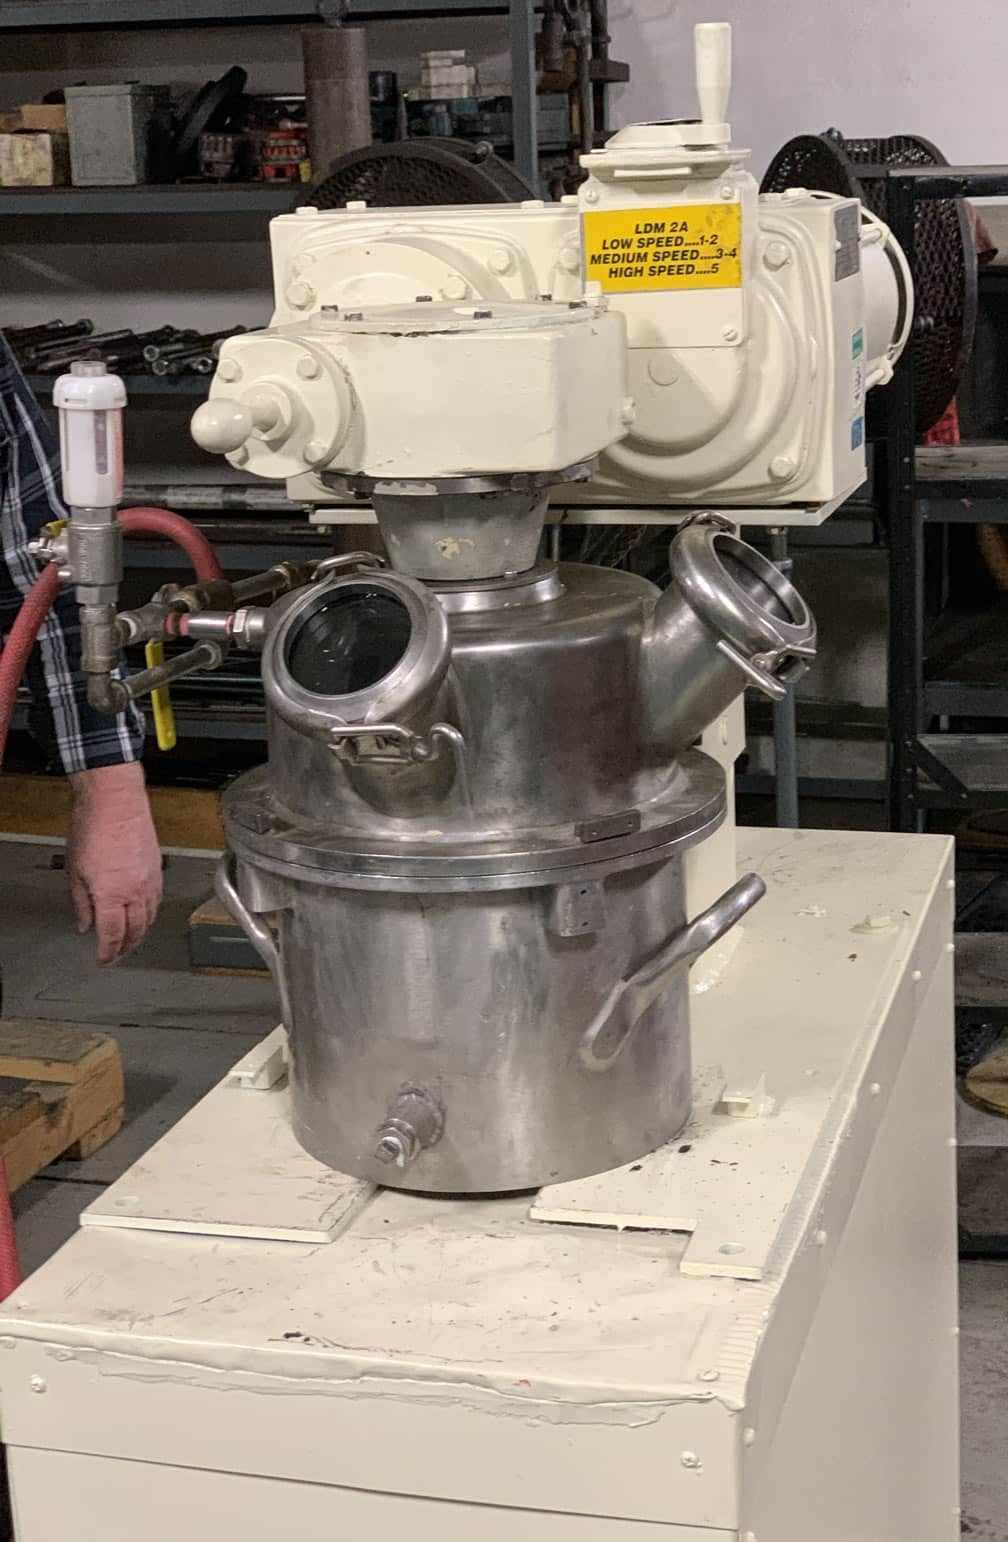 REFURBISHED ROSS LDM-2 DOUBLE PLANETARY MIXER